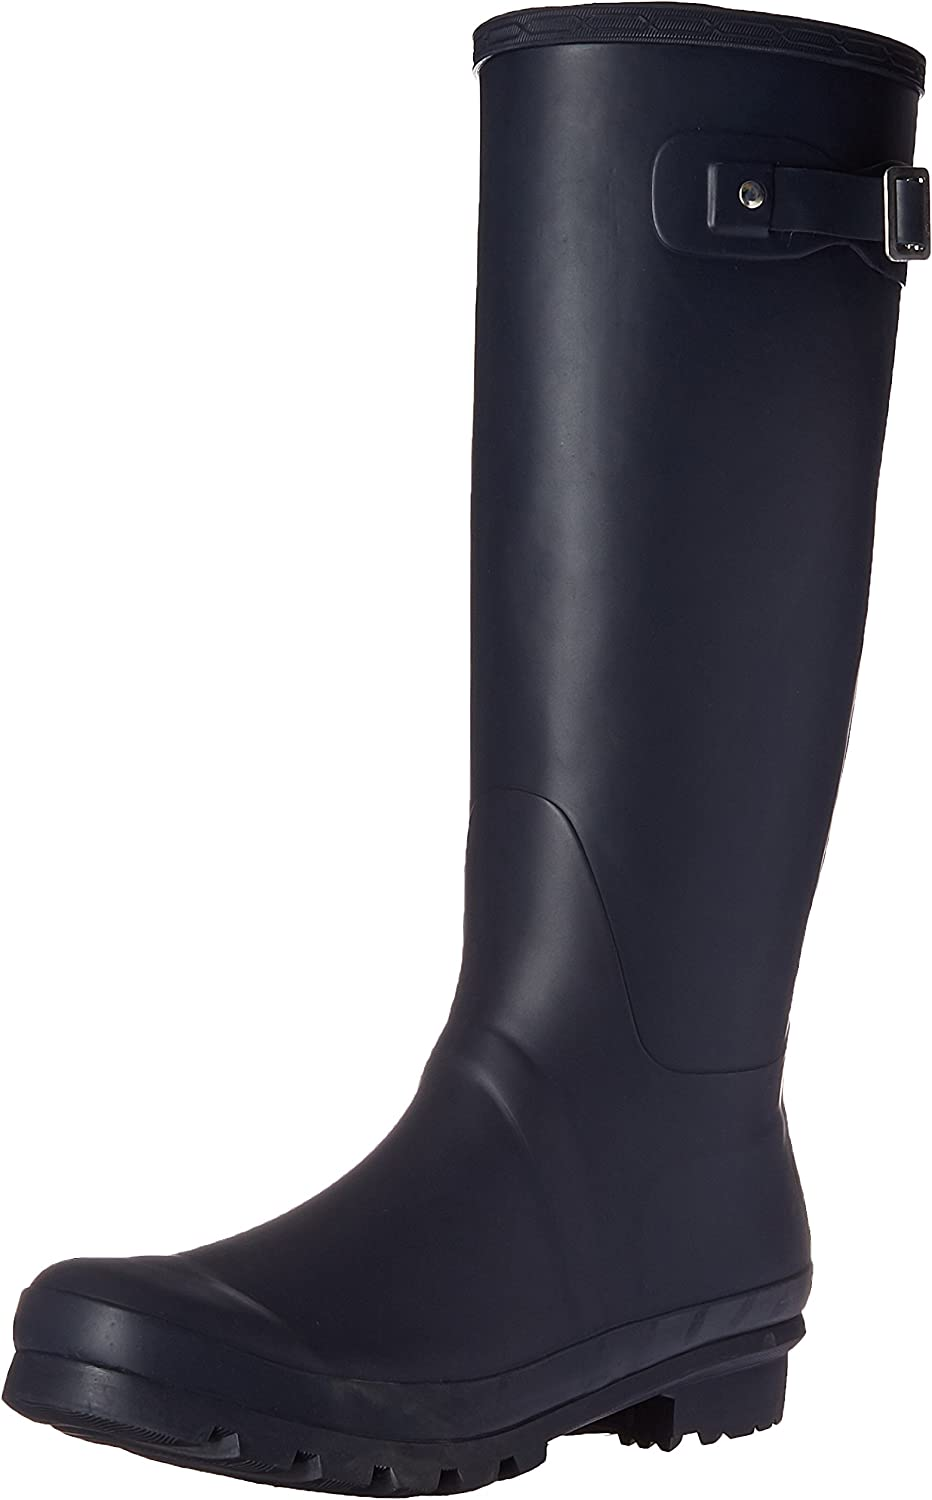 Polar Womens Original Tall Snow Winter Waterproof Rain Wellies Wellington Boots - 11 - NAO42 BL0207